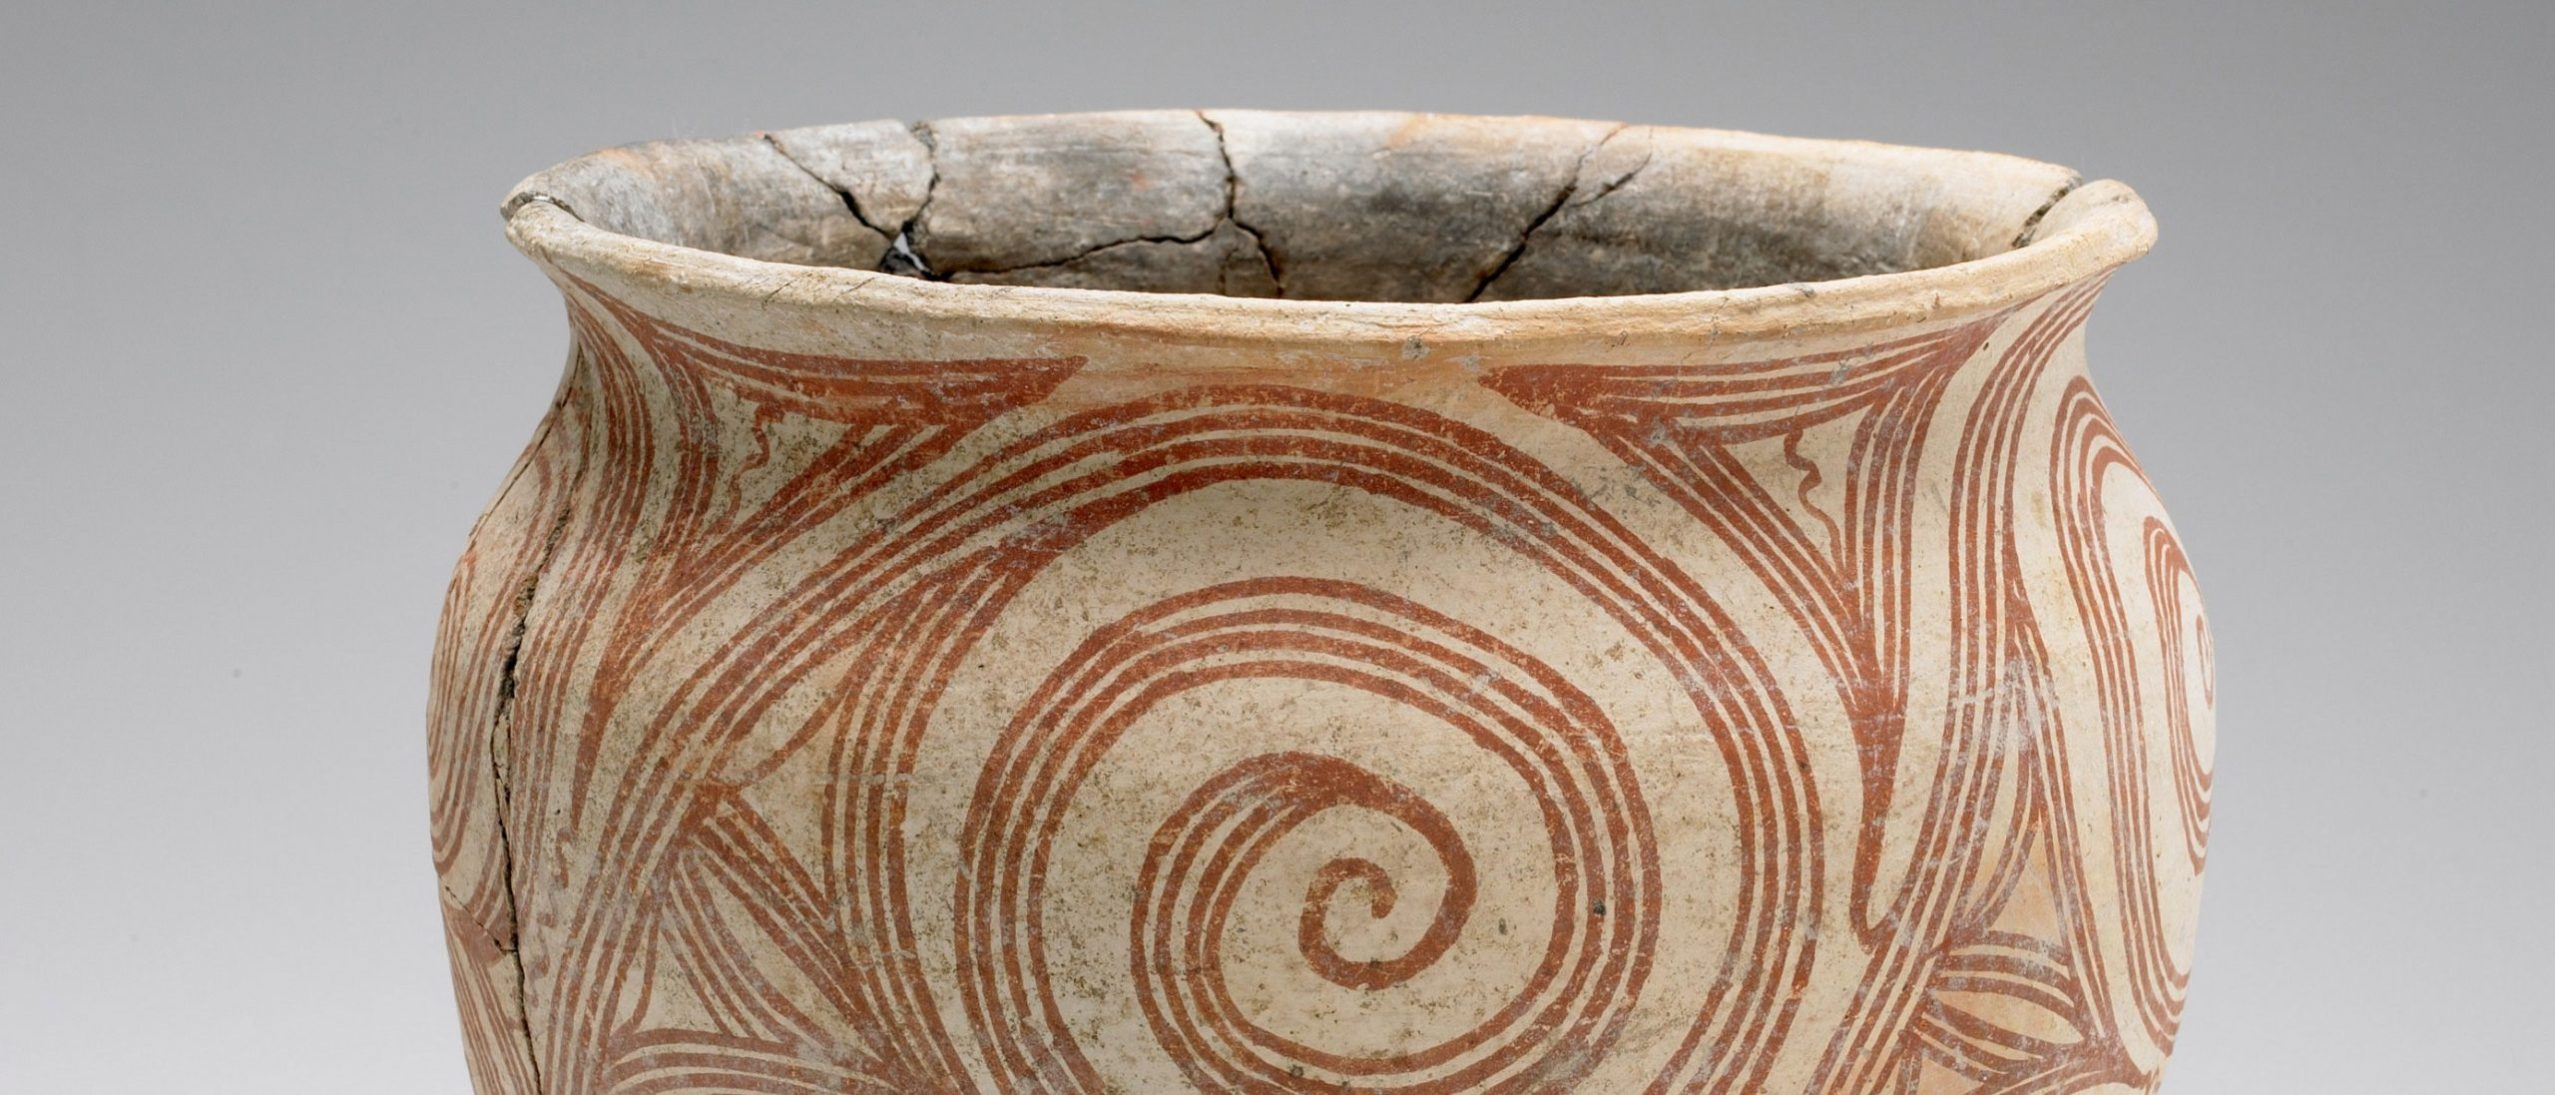 detail of an earthenware pot, showing the opening, which is slightly cracked, and the front is decorated with a reddish orange pattern of lines in a swirl.